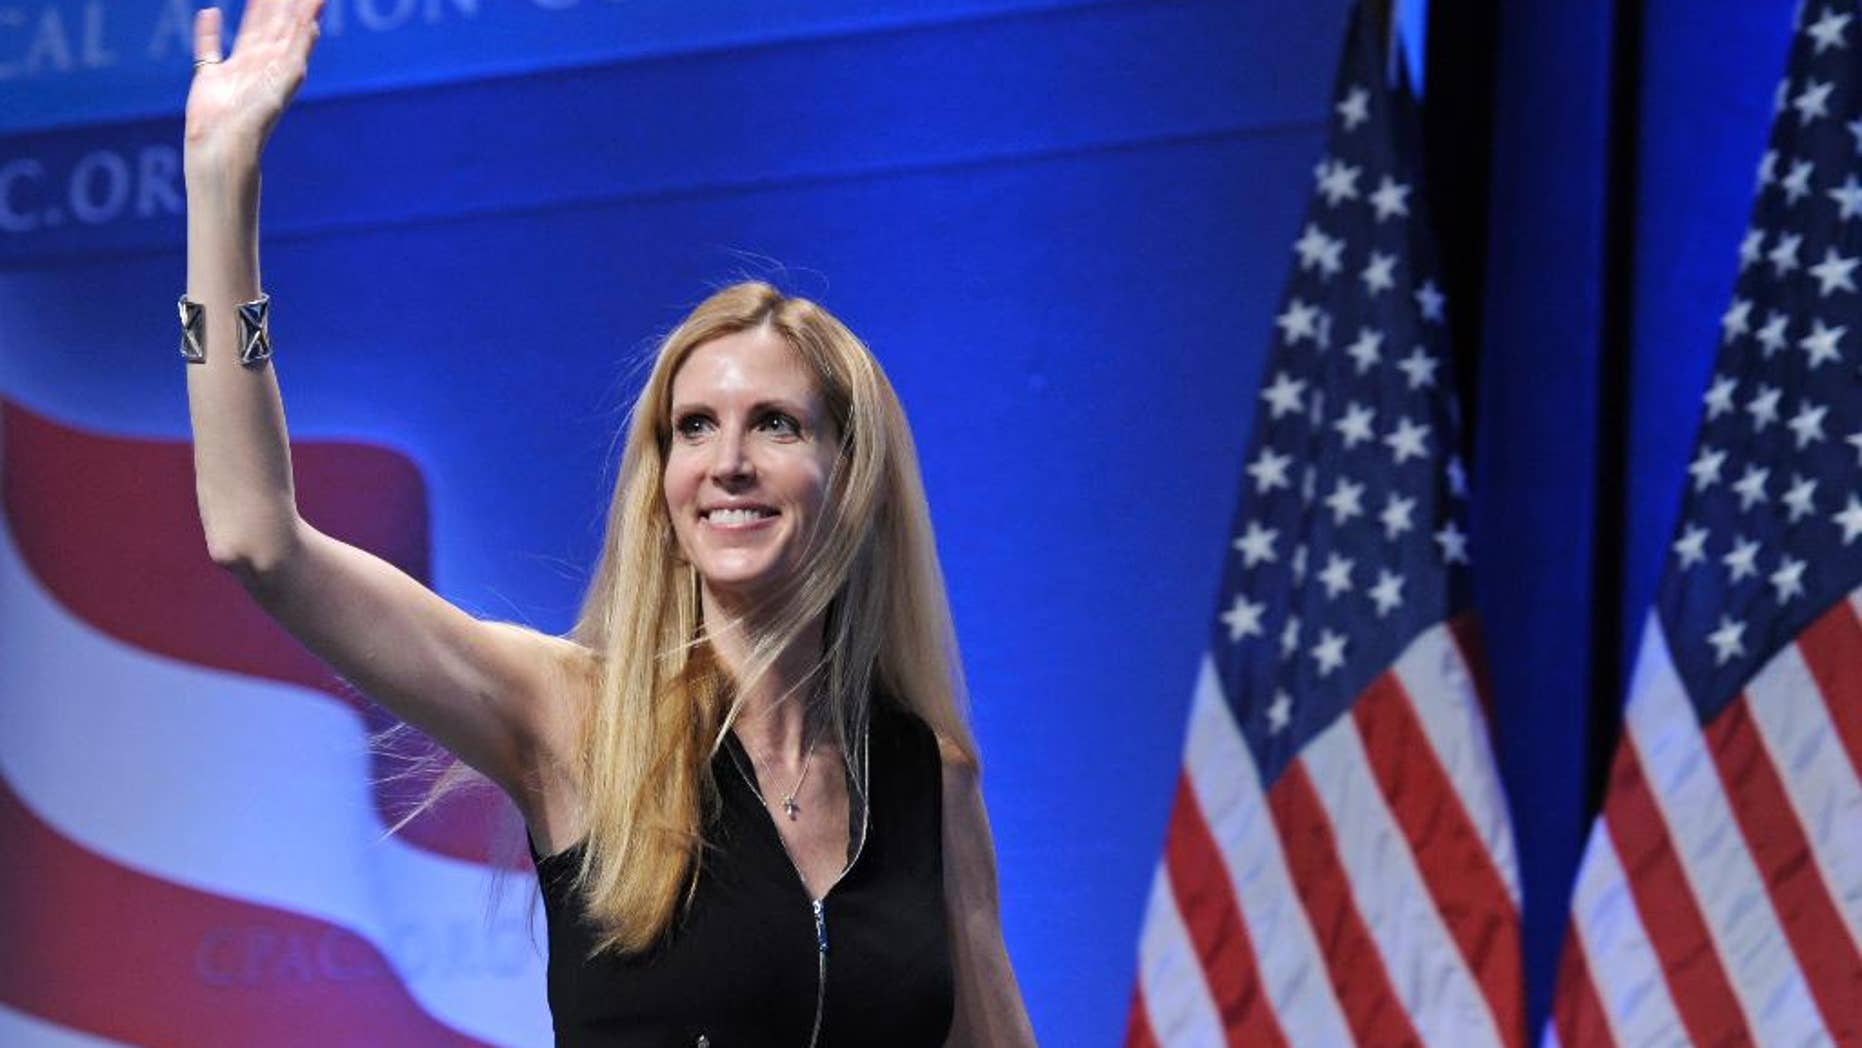 """FILE - In this Feb. 12, 2011 file photo, Ann Coulter waves to the audience after speaking at the Conservative Political Action Conference (CPAC) in Washington. Coulter's planned appearance at the University of California, Berkeley on April 27 has been canceled because of security concerns. UC Berkeley officials say they were unable to find """"a safe and suitable"""" venue for the right-wing provocateur, whom campus Republicans had invited to speak. (AP Photo/Cliff Owen, File)"""